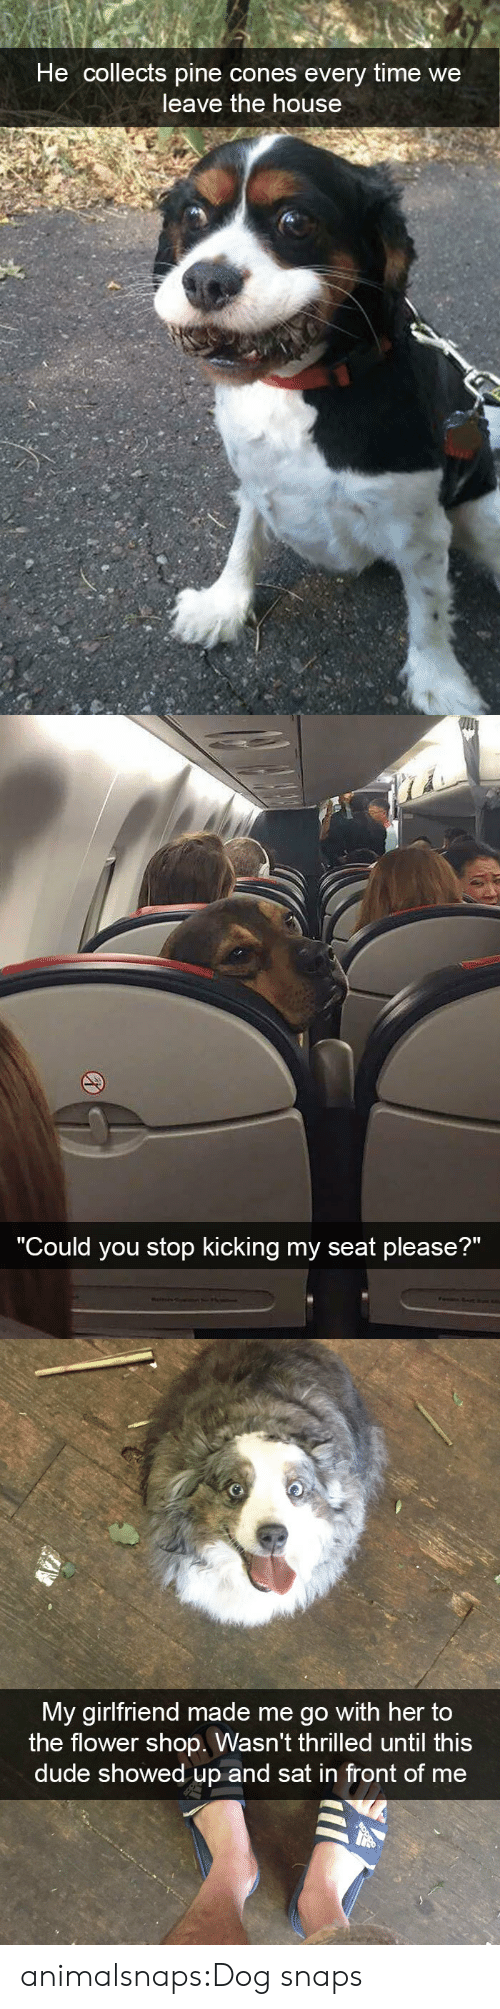 """thrilled: He collects pine cones every time we  leave the house   """"C  ould you stop kicking my seat please?""""   My girlfriend made me go with her to  the flower shop. Wasn't thrilled until this  dude showed up and sat in front of me animalsnaps:Dog snaps"""